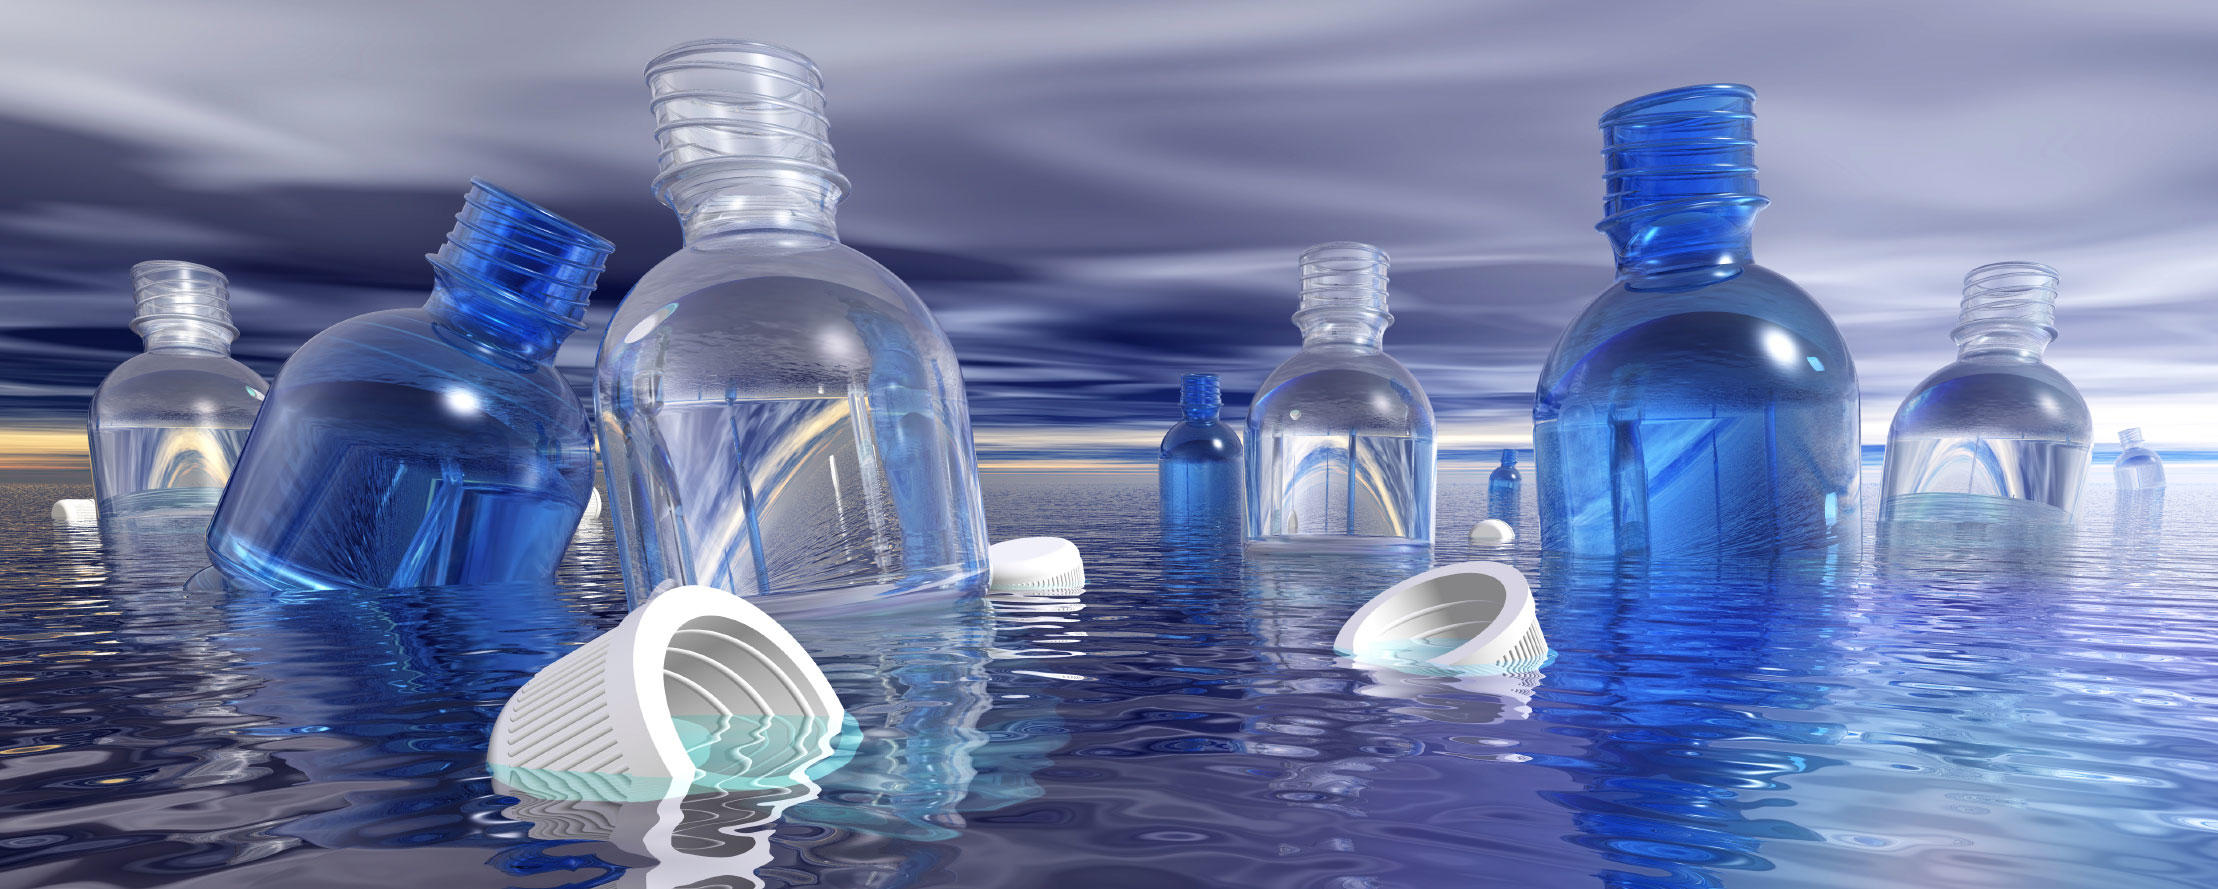 Group of plastic bottles in water